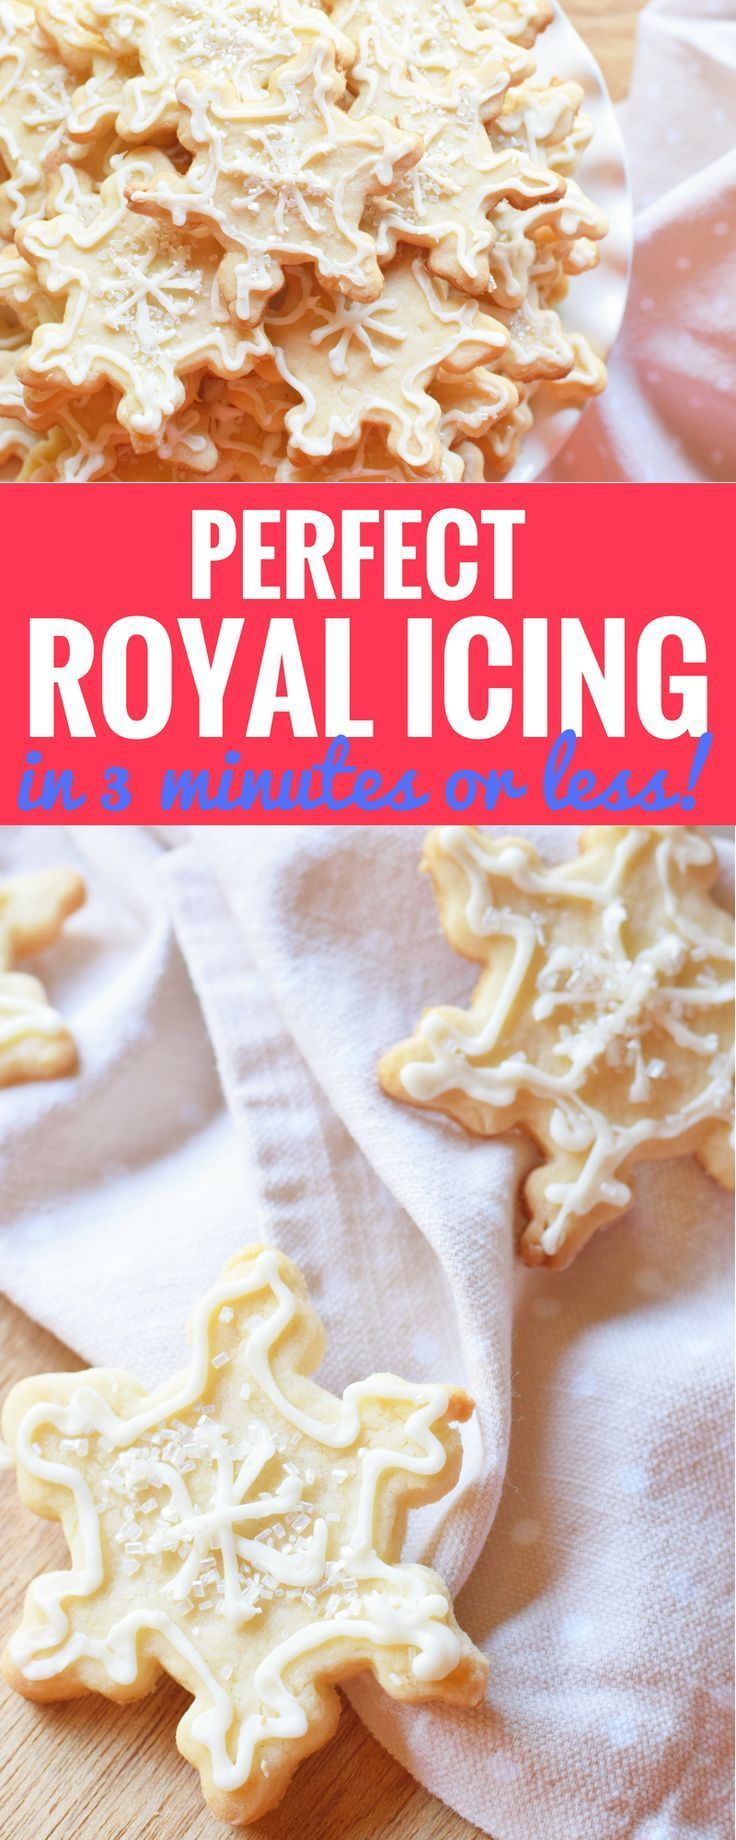 How To Make Perfect Royal Icing In 3 Minutes